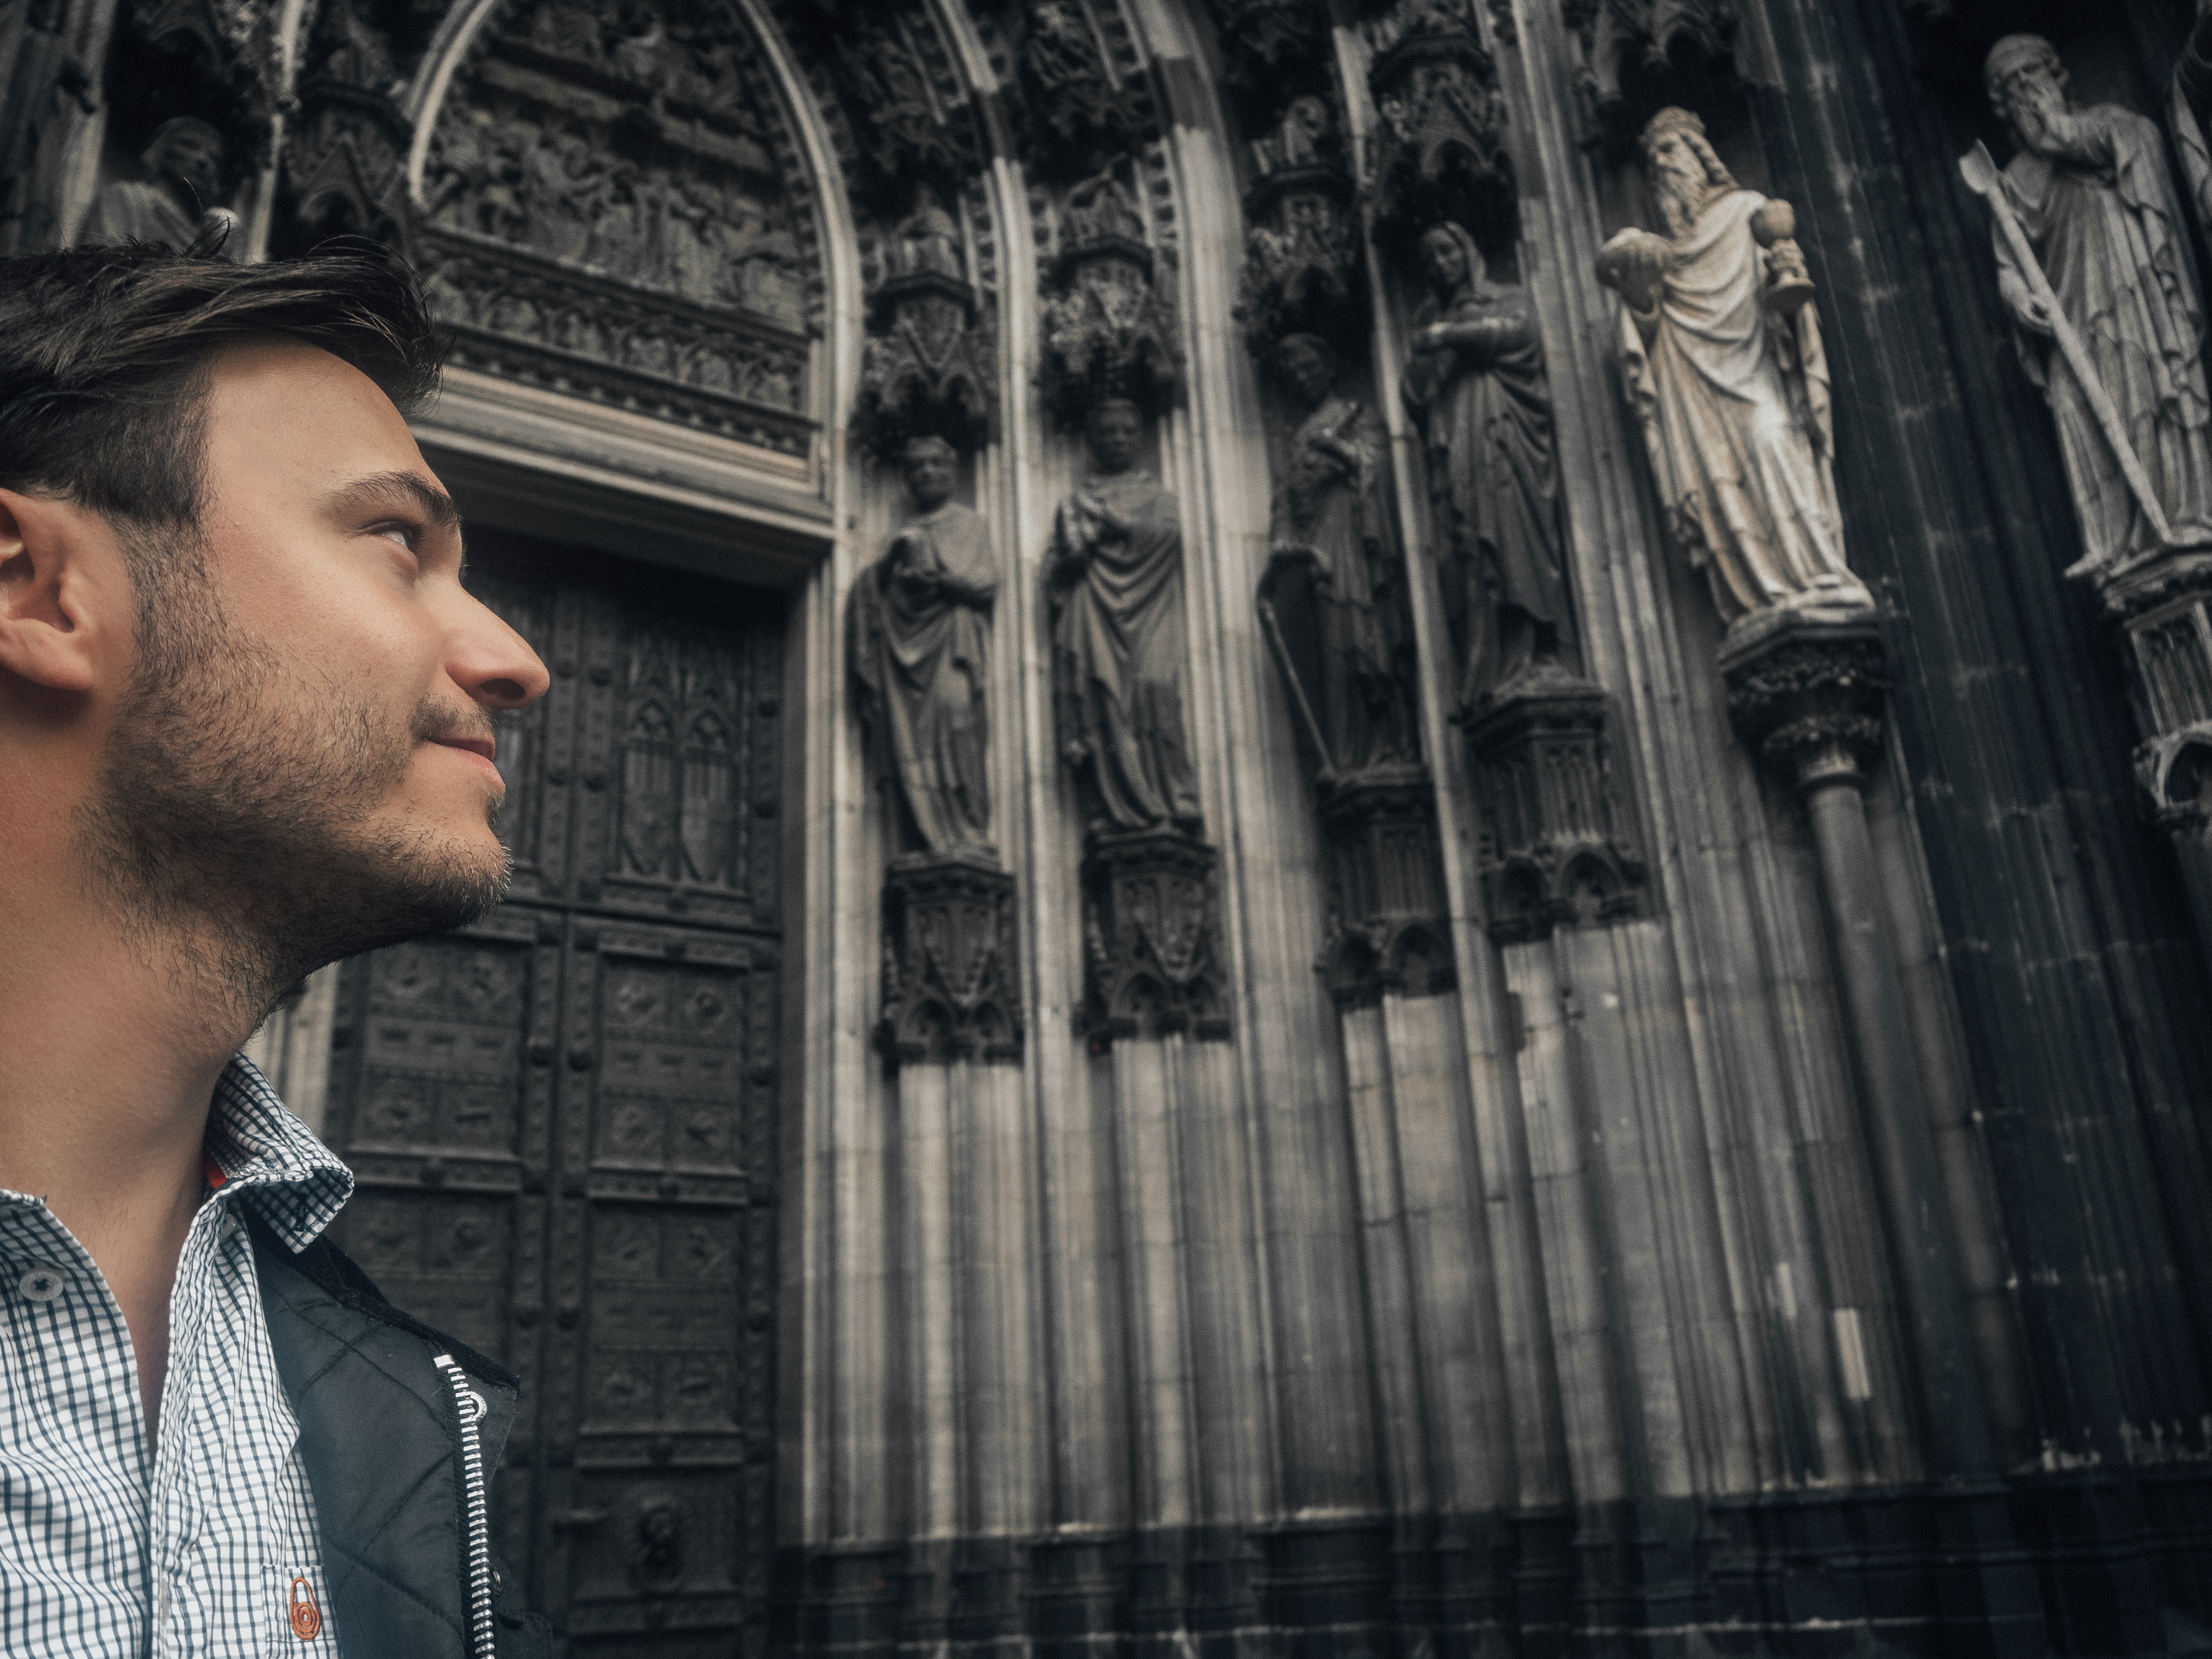 Simon Eriksson by Cologne Cathedral